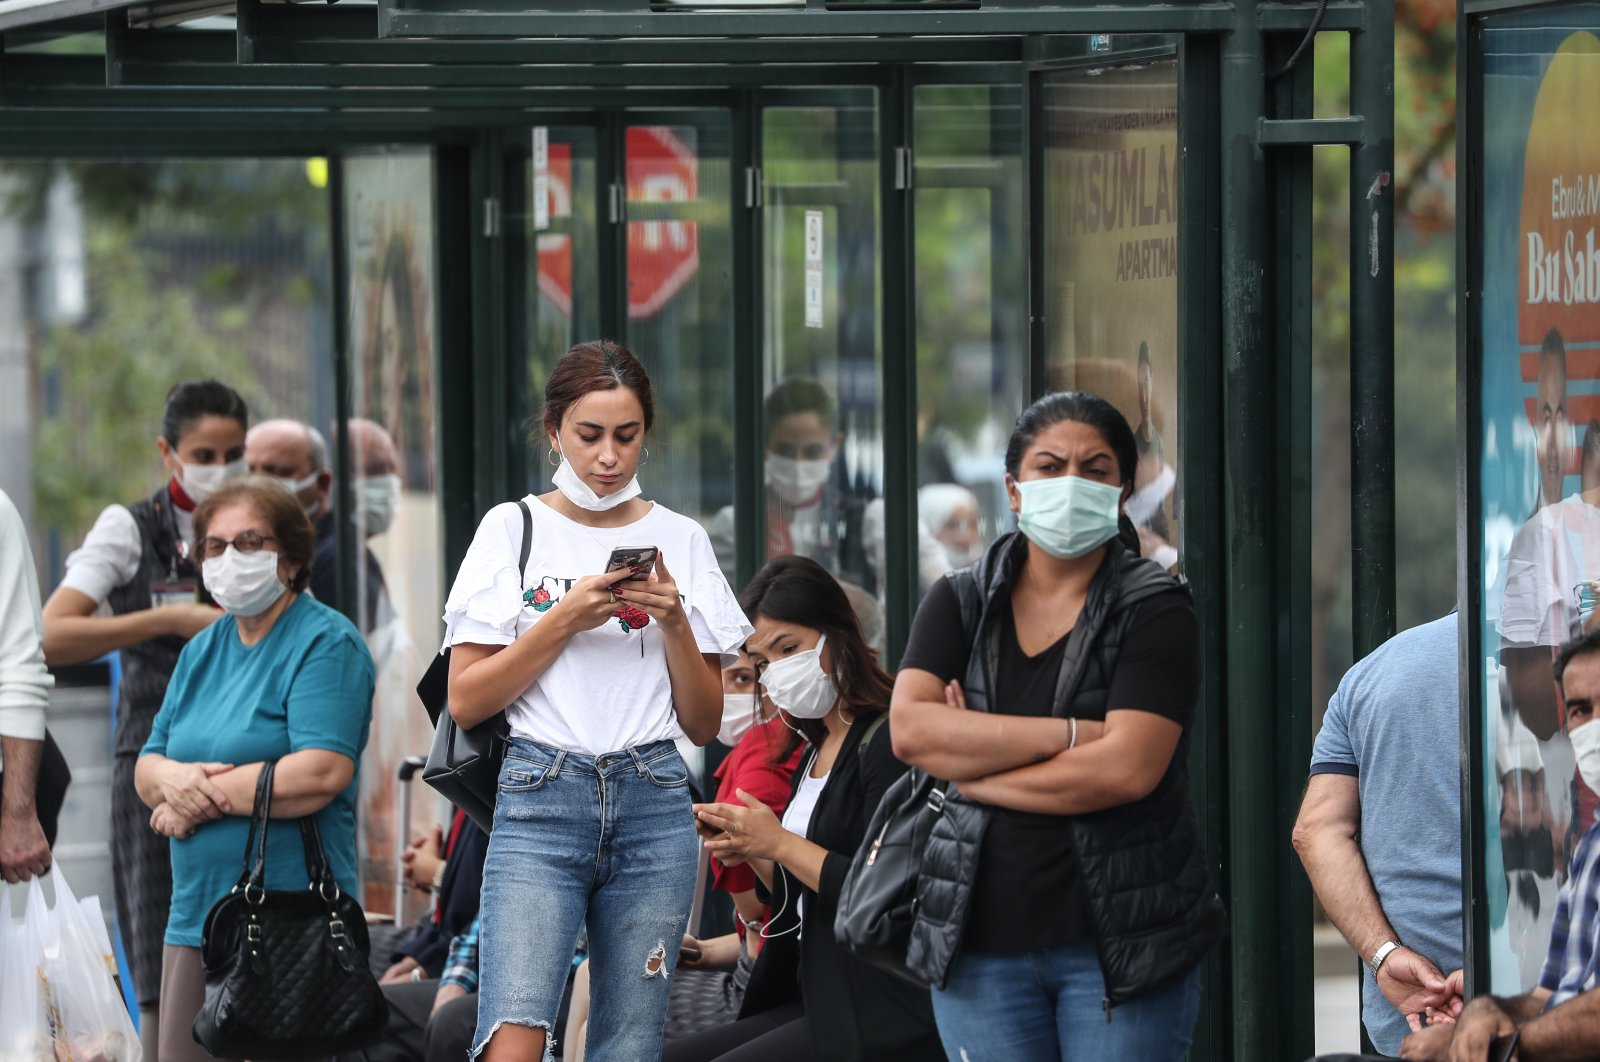 People wearing masks against COVID-19 wait at a bus stop in Istanbul, Turkey, Sept. 15, 2021. (DHA PHOTO)